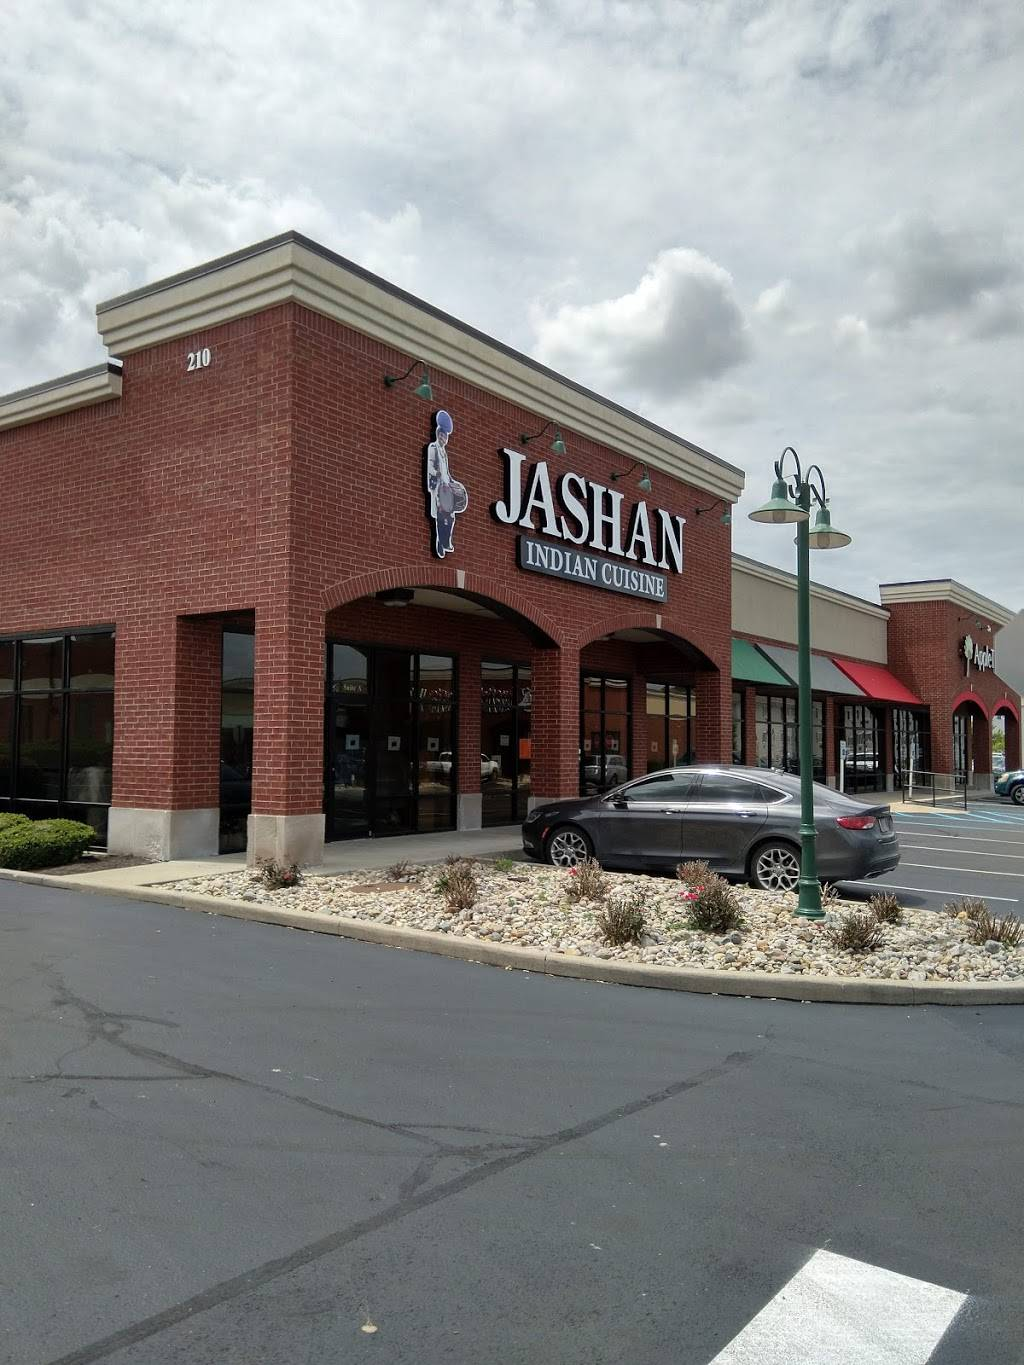 Jashan Indian Cuisine | restaurant | 210 Emerson Ave, Greenwood, IN 46143, USA